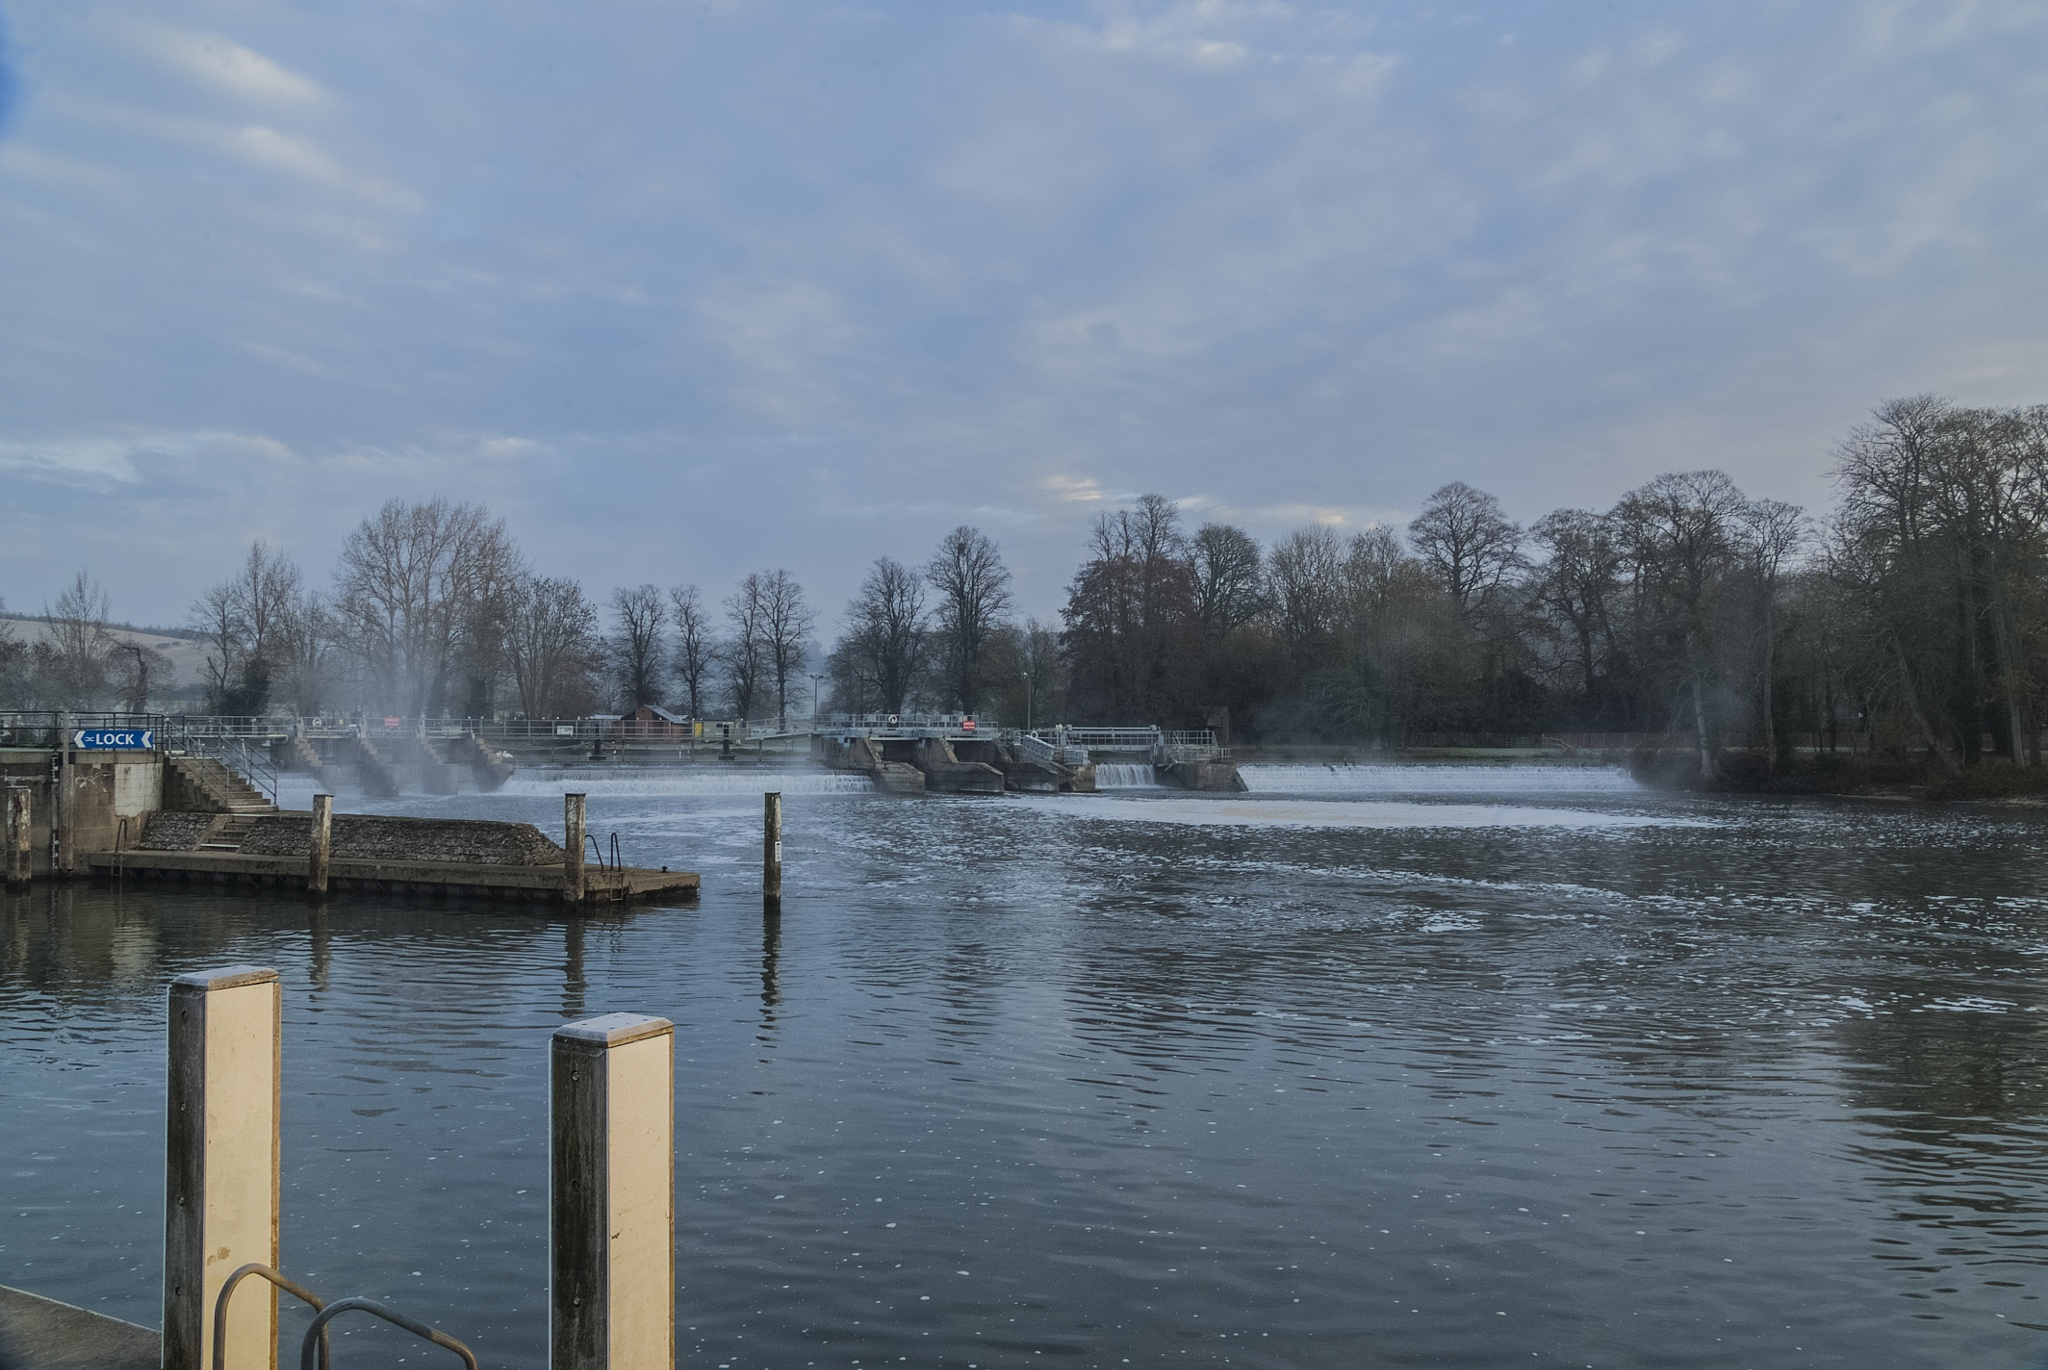 Mapledurham Lock and Weir  by Jim Hellier